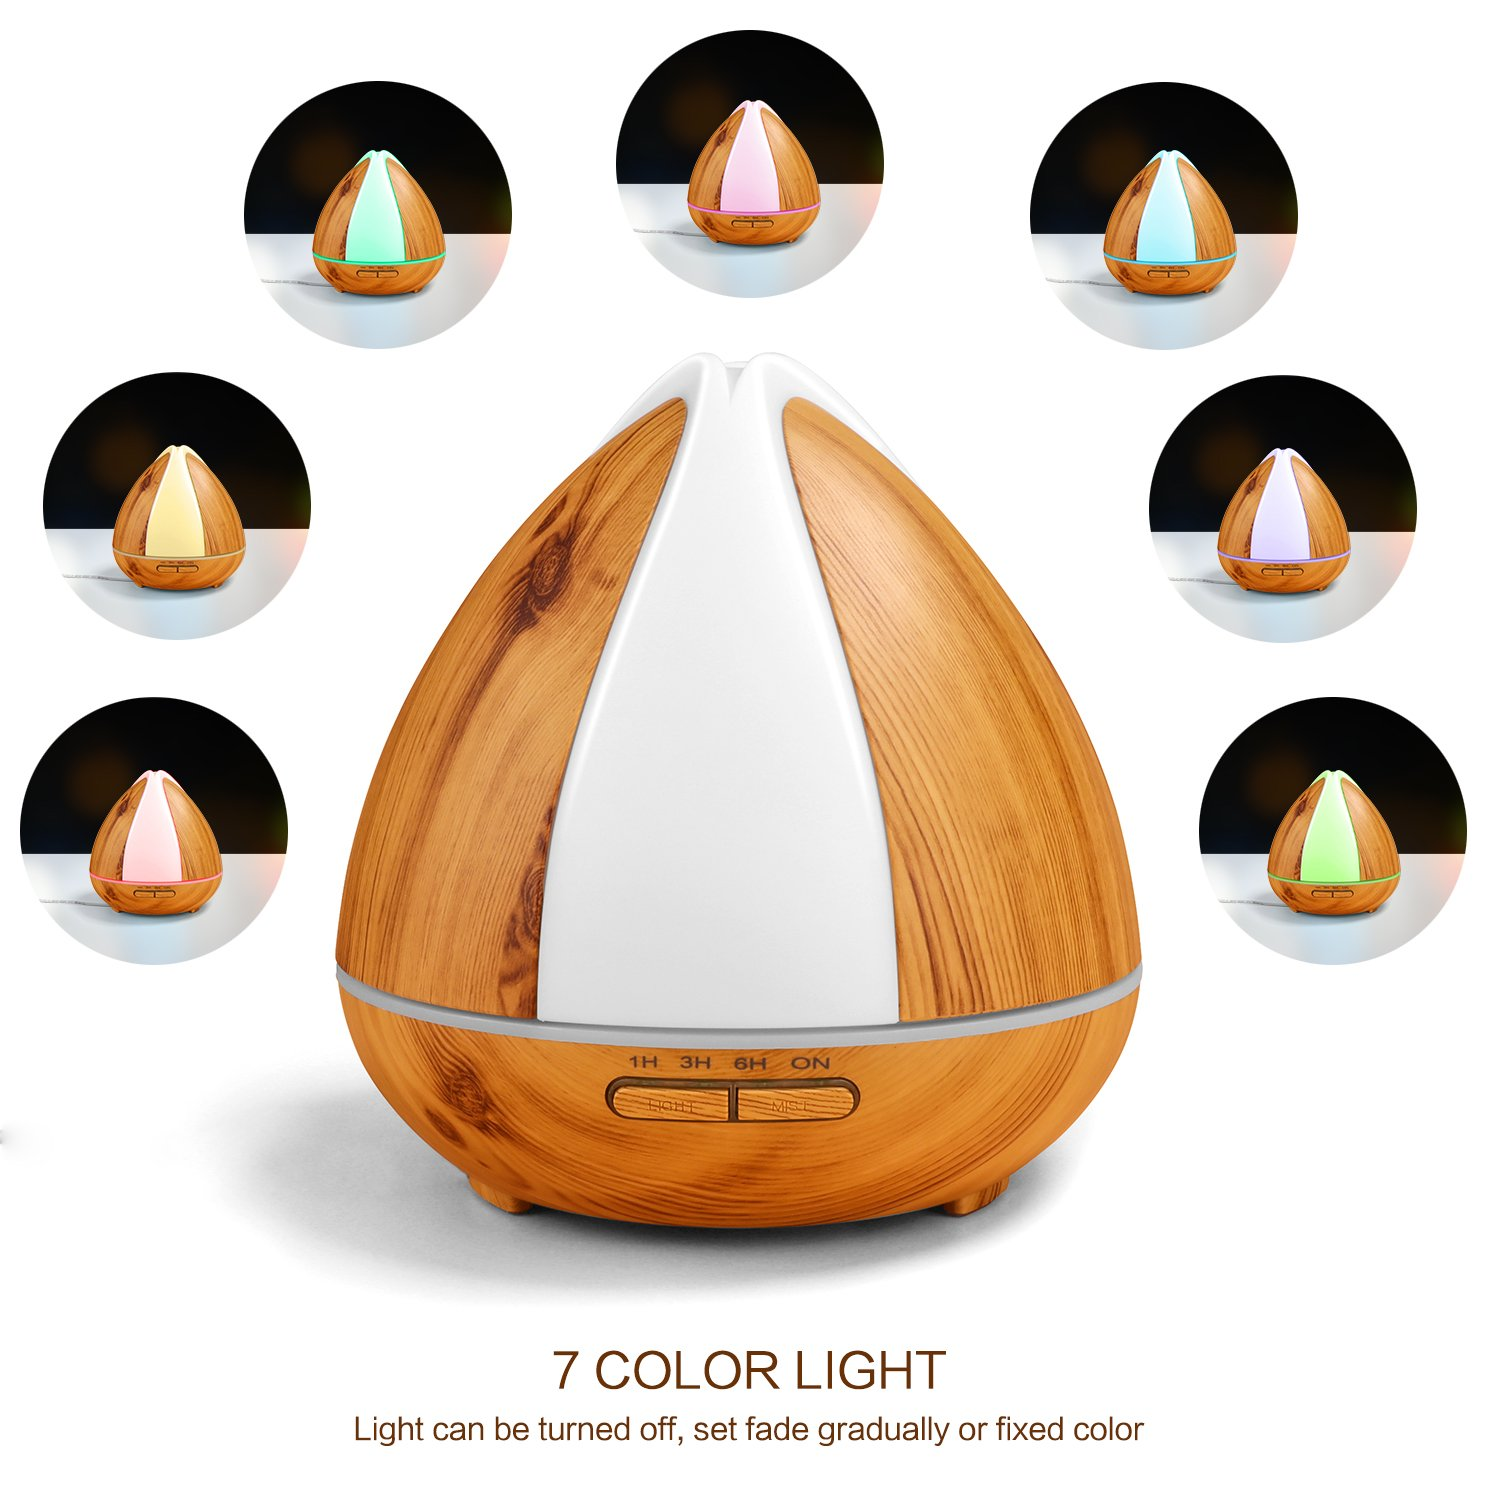 OMOTON Ultrasonic Aroma Diffuser 300ML Cool Mist Humidifiers Aromatherapy with 7 Adjustable LED Lights, Essential Oils Air Purifier, Super Quiet